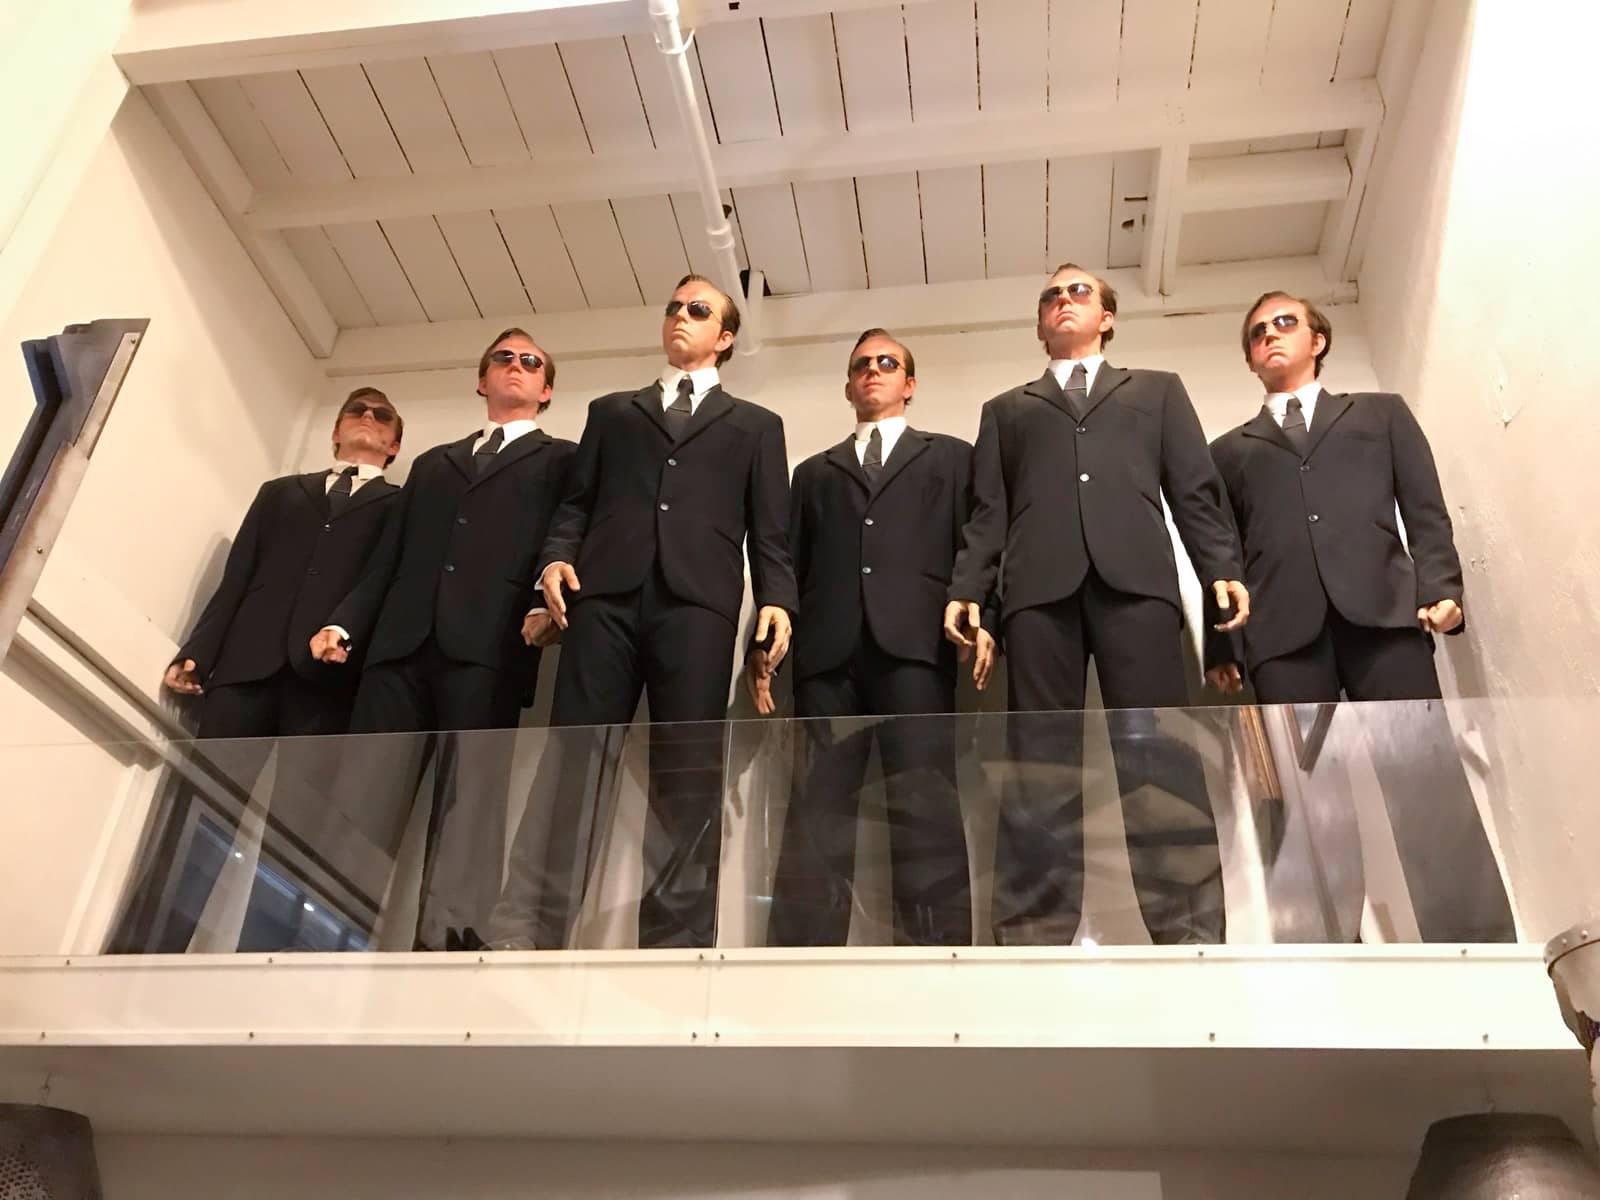 A prop of six men in suits and dark sunglasses made to resemble the same character